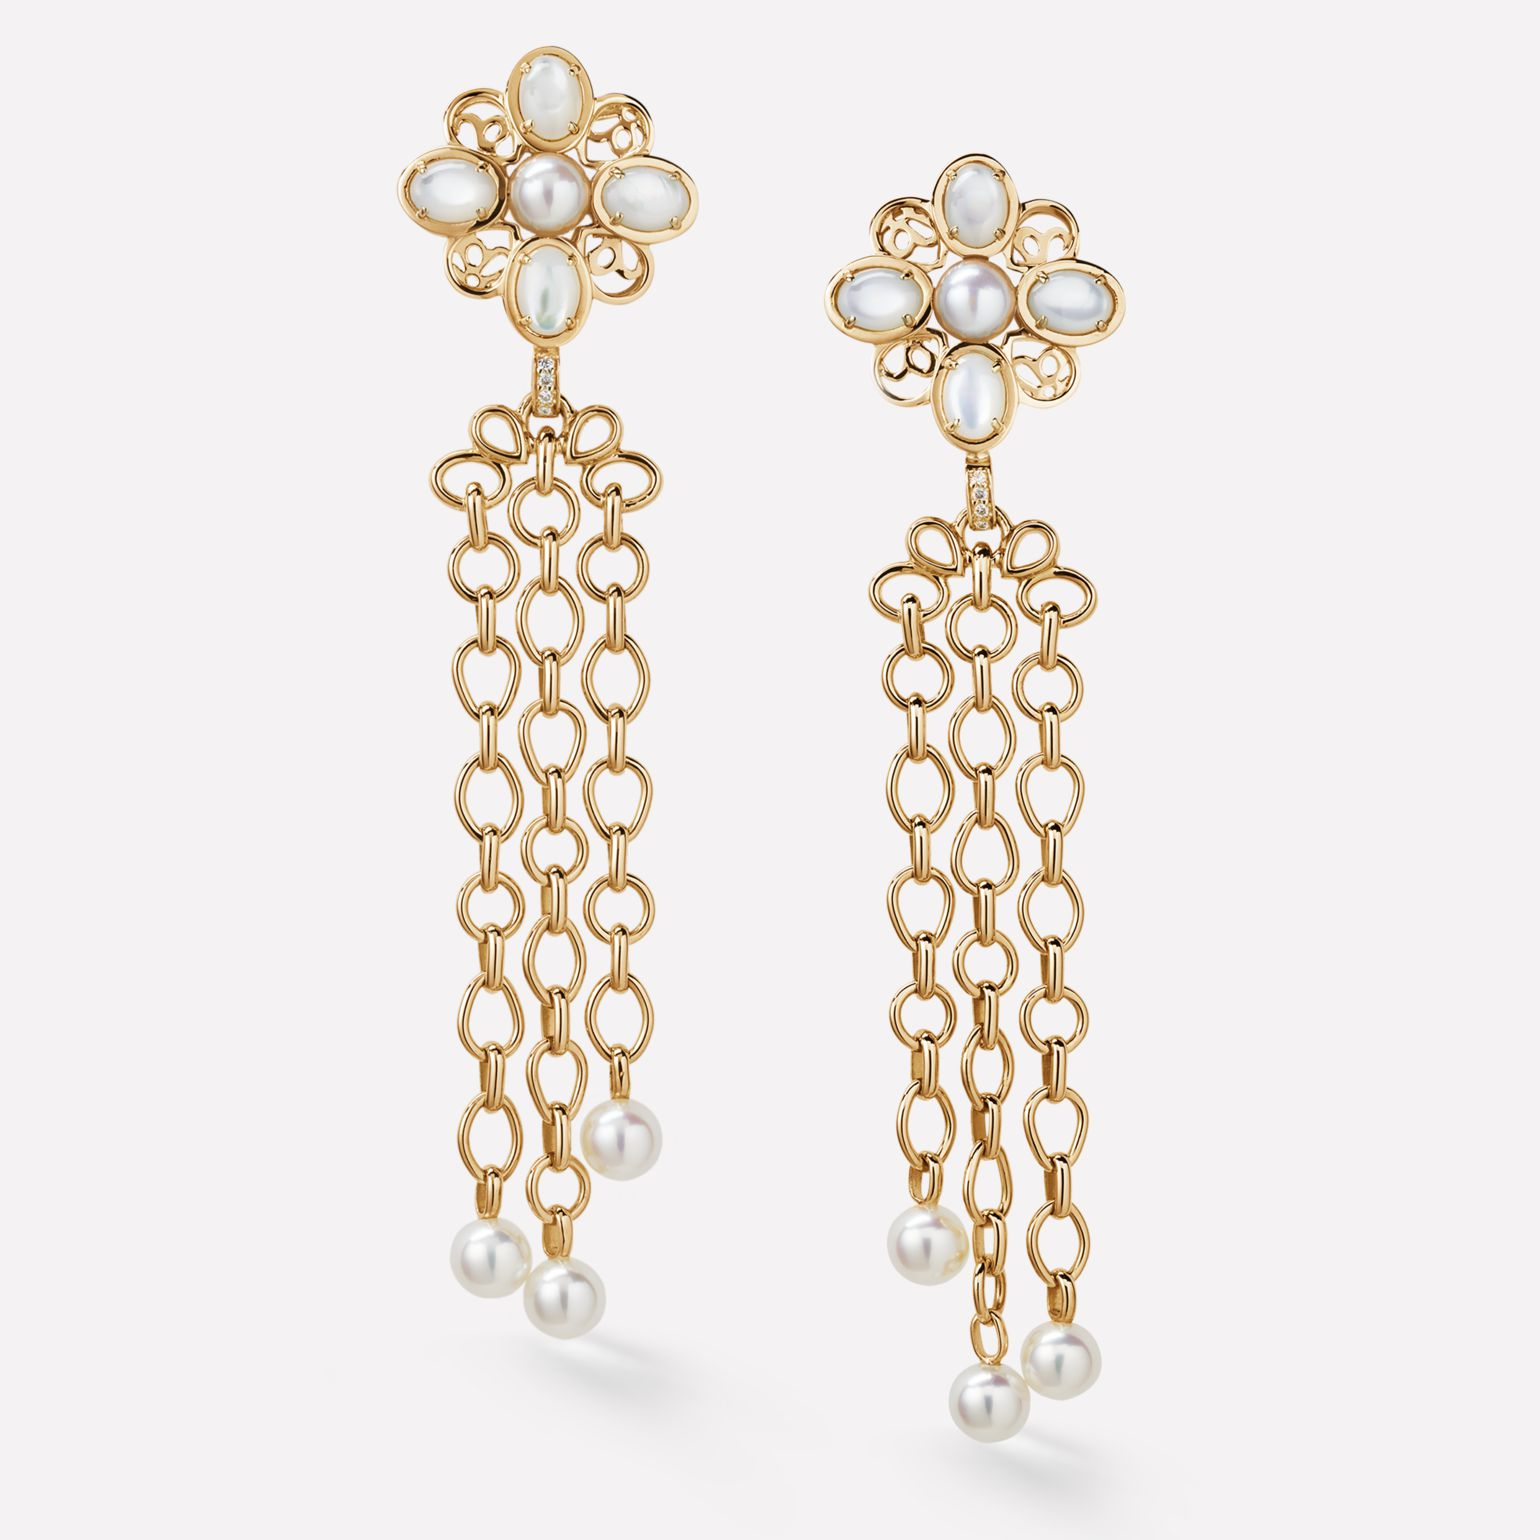 Baroque Earrings Perles Chaînes earrings in 18K yellow gold, diamonds, cultured pearls and semi-precious gemstones